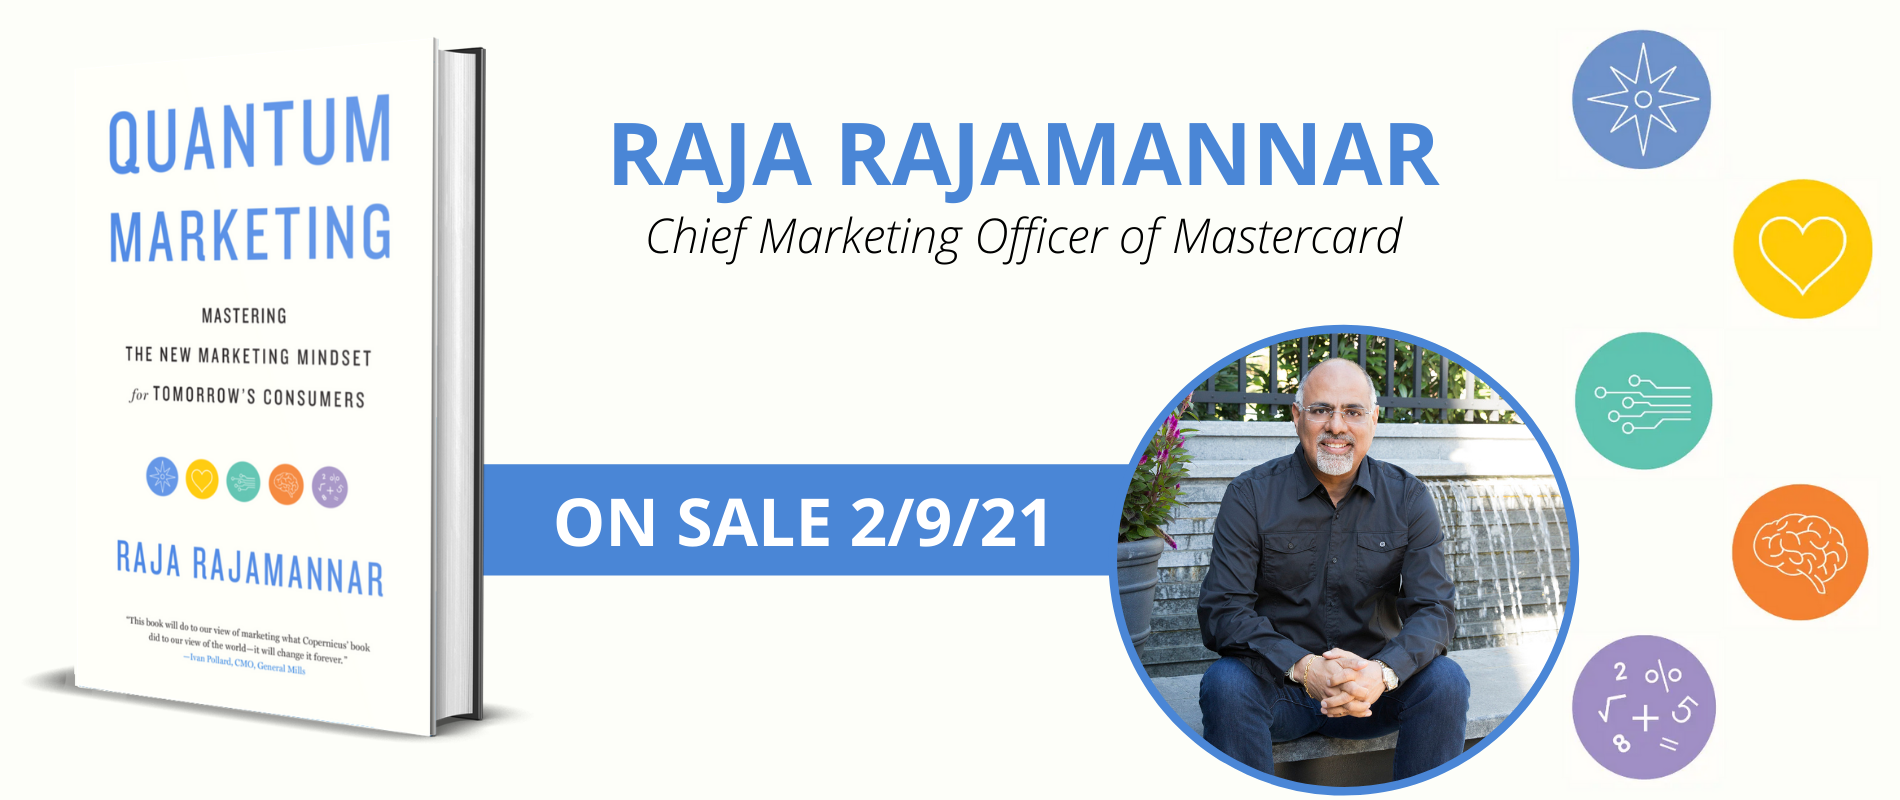 Quantum Marketing by Raja Rajamannar